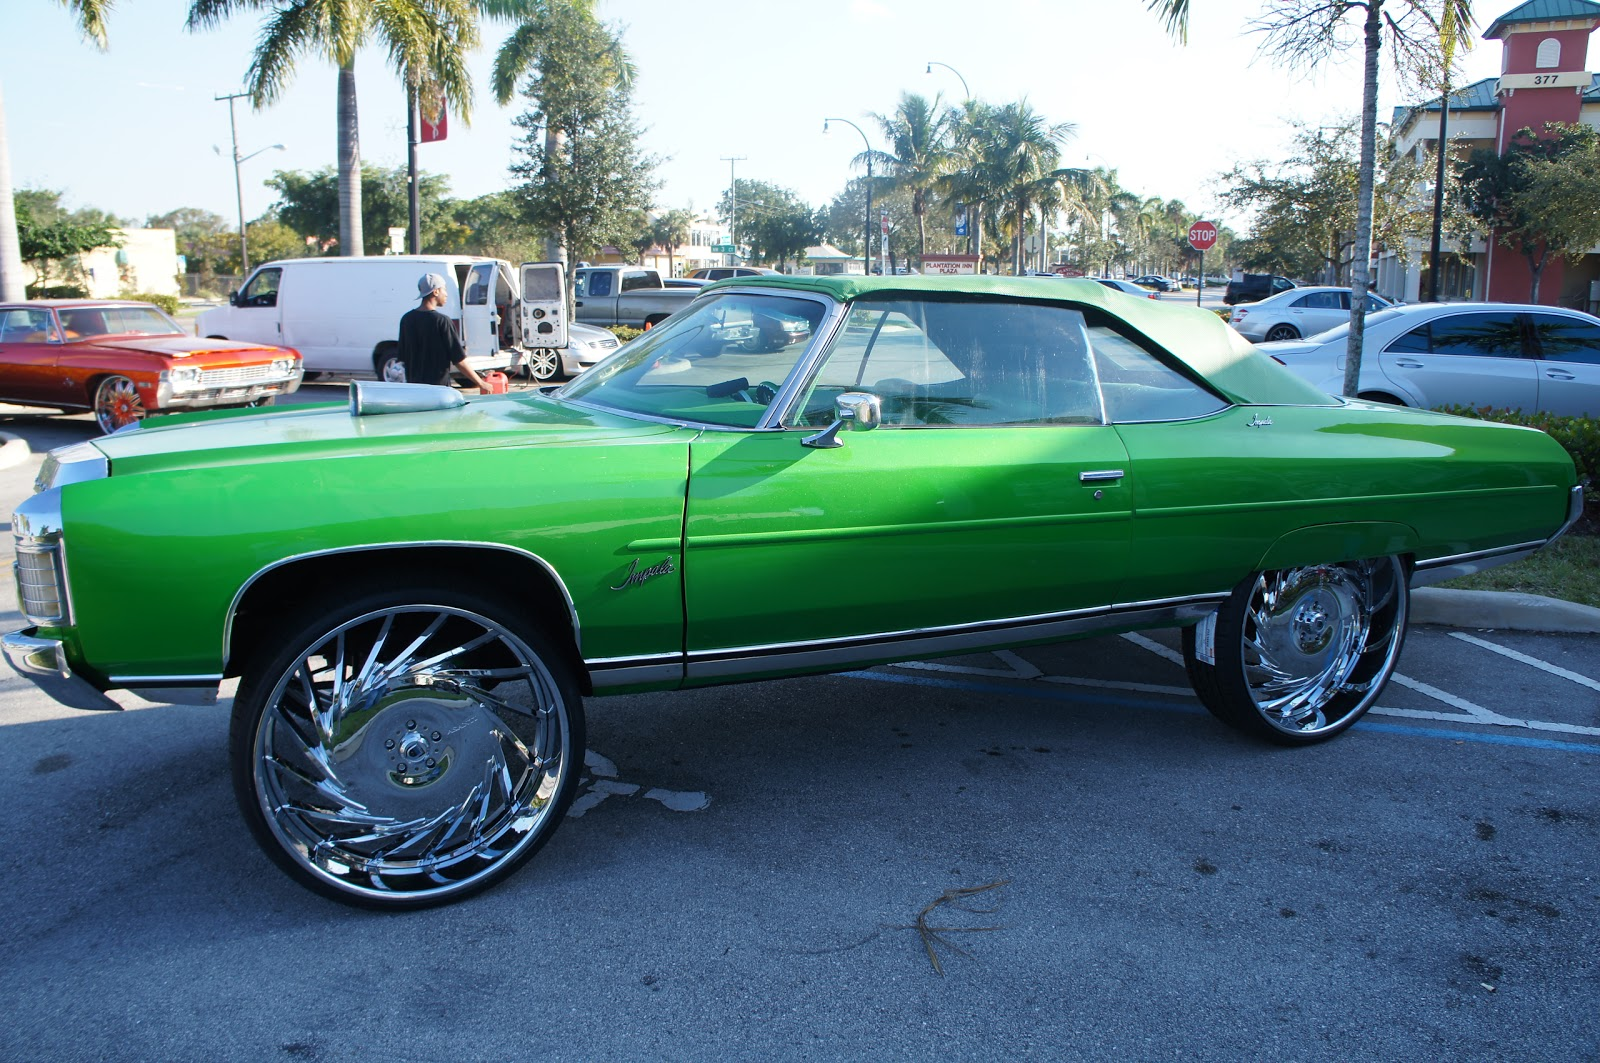 Chevy on 30s http://whytee954.blogspot.com/2012/03/chevy-donk-vert-on-30-asantis.html